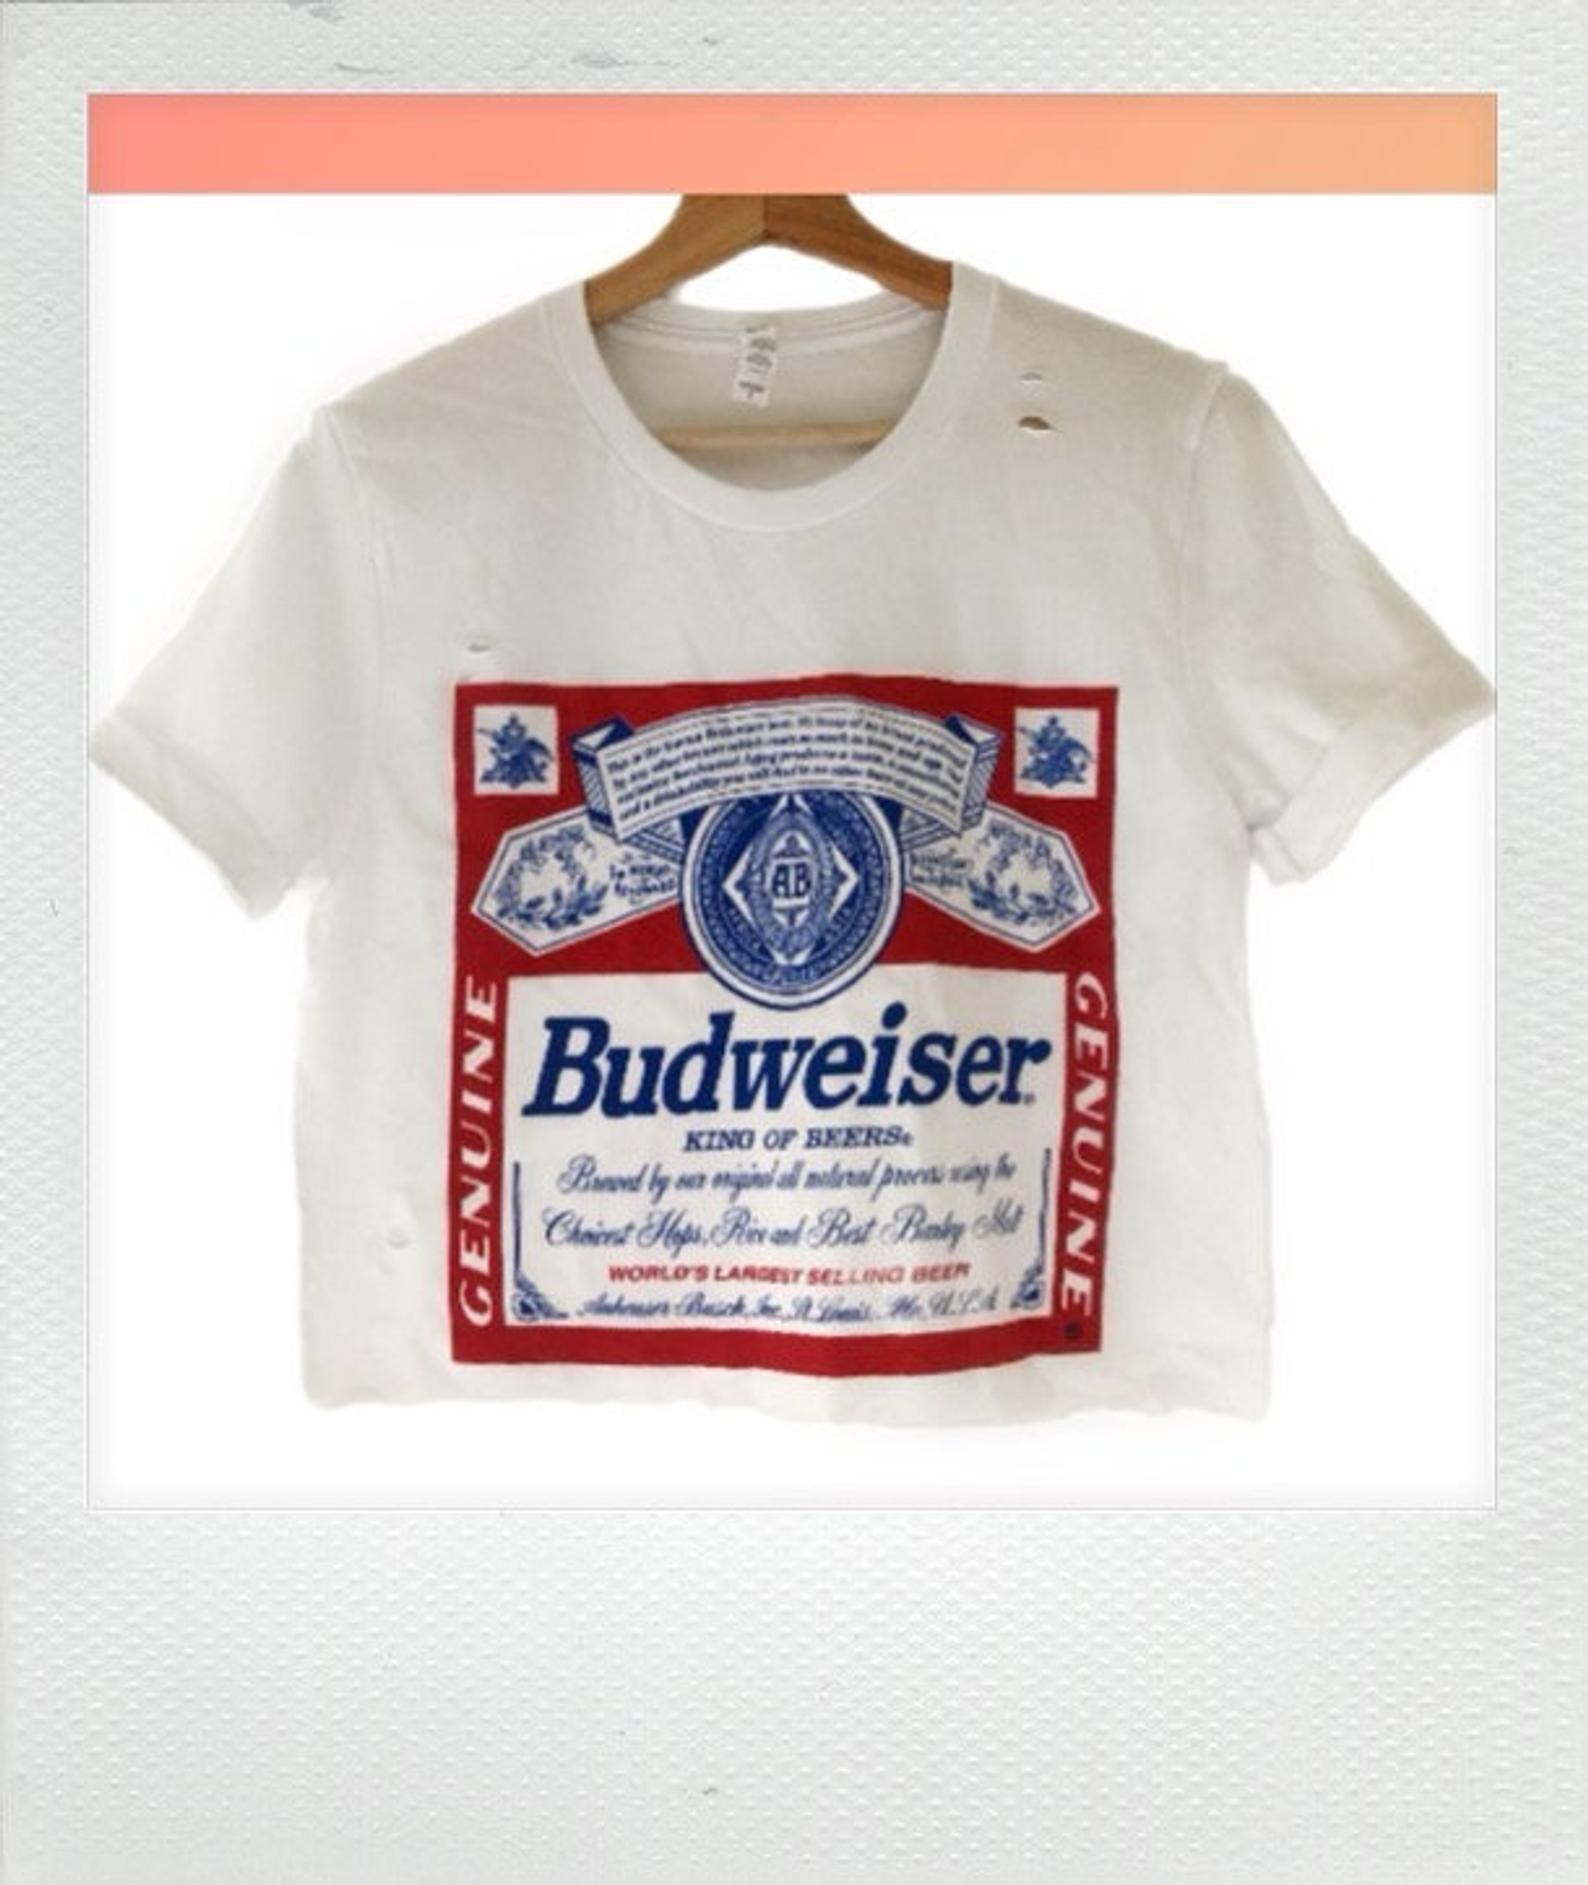 The Owners Creations Budweiser Crop Top